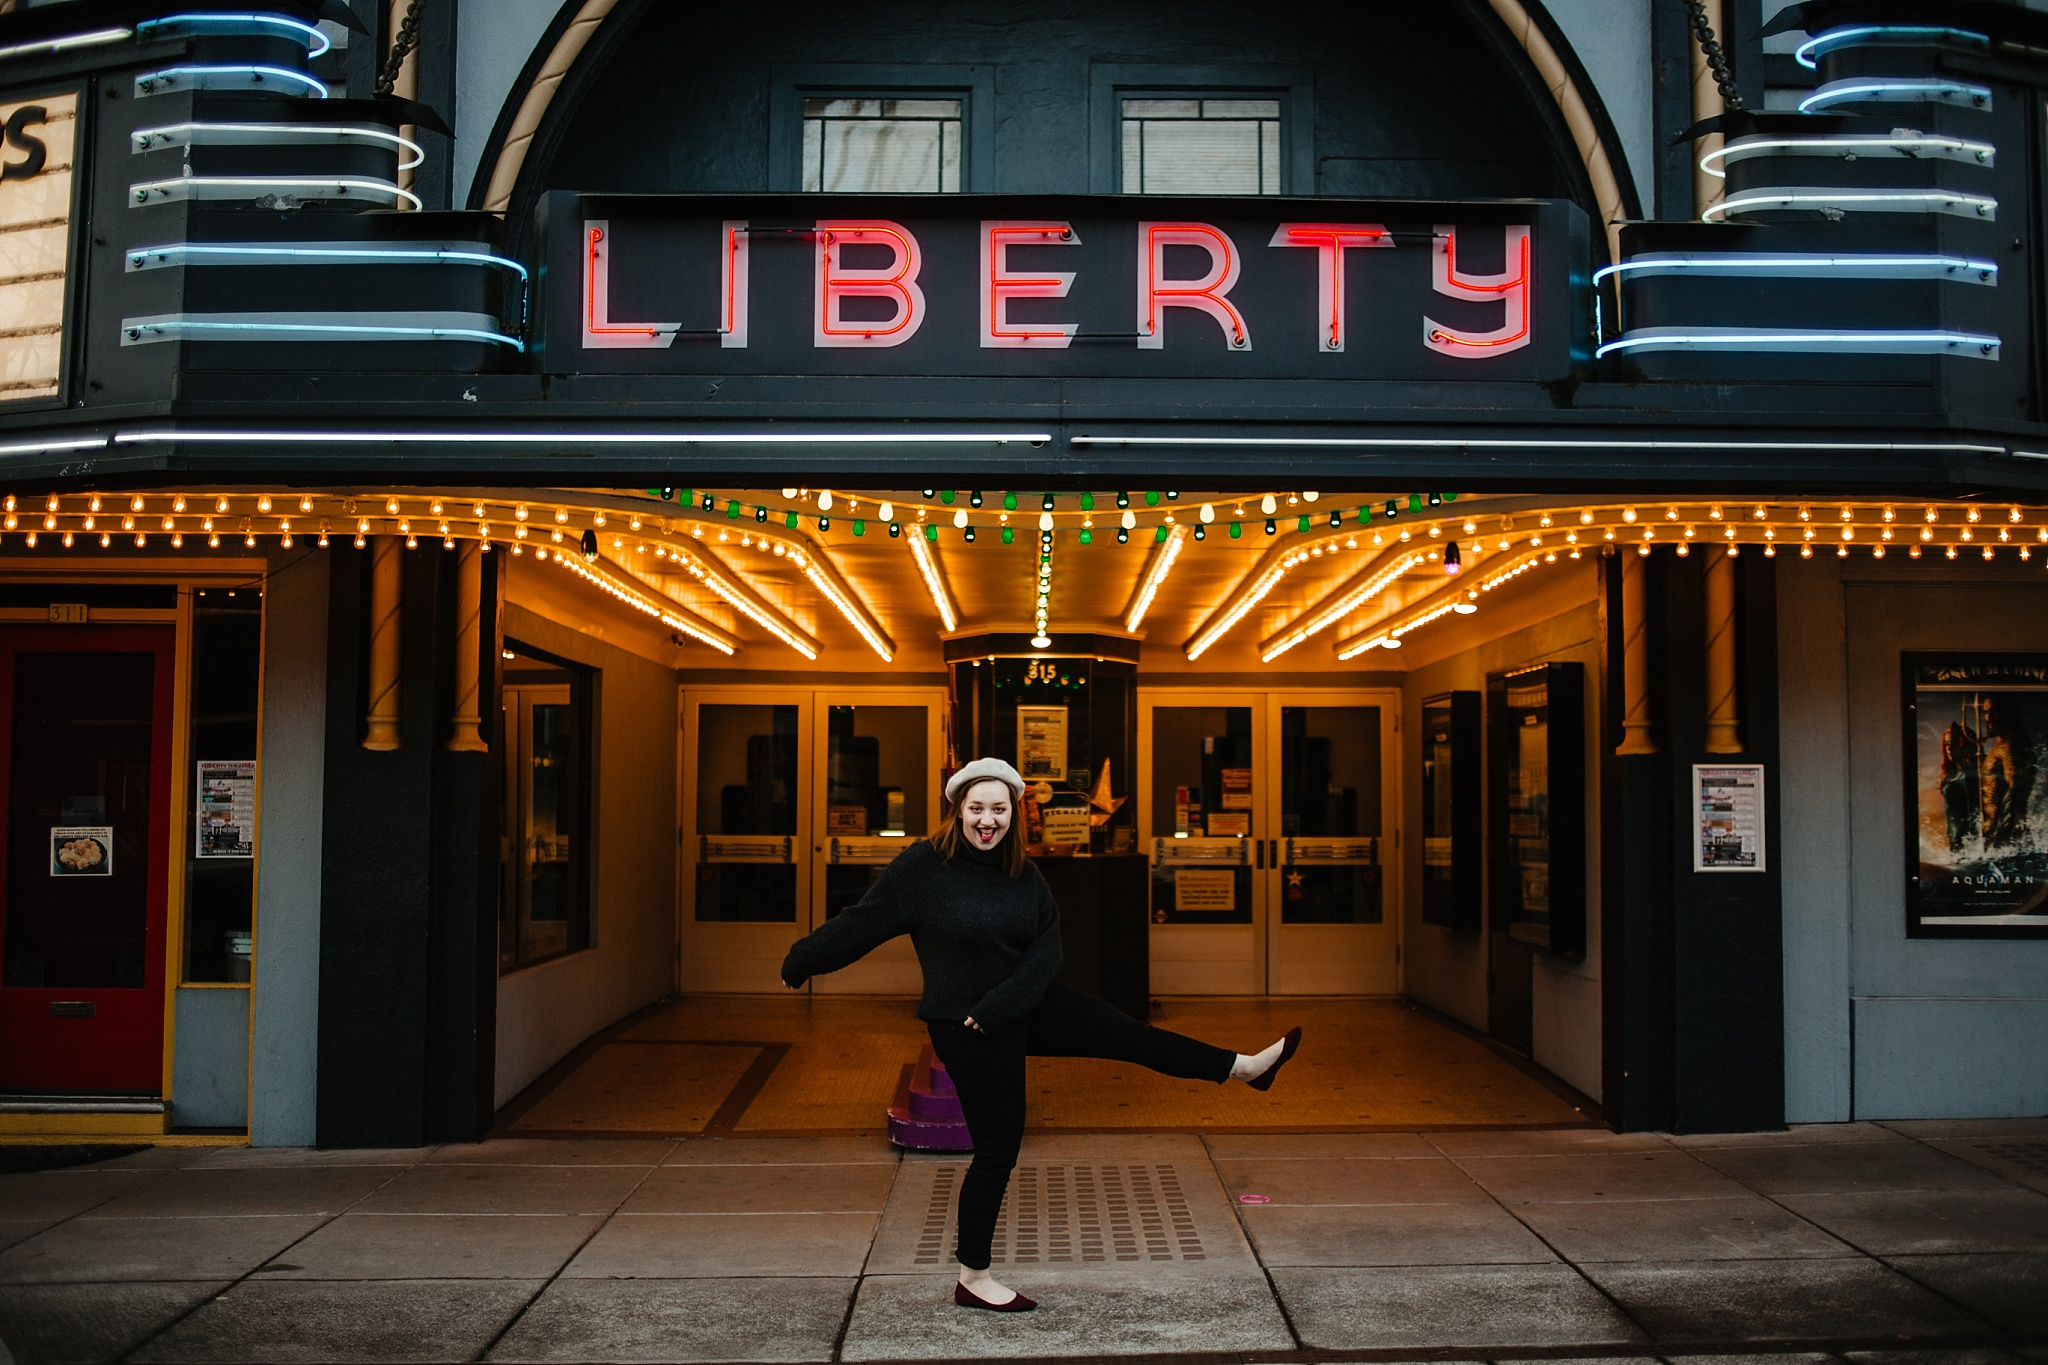 jo-liberty-theater-malina-rose-photography